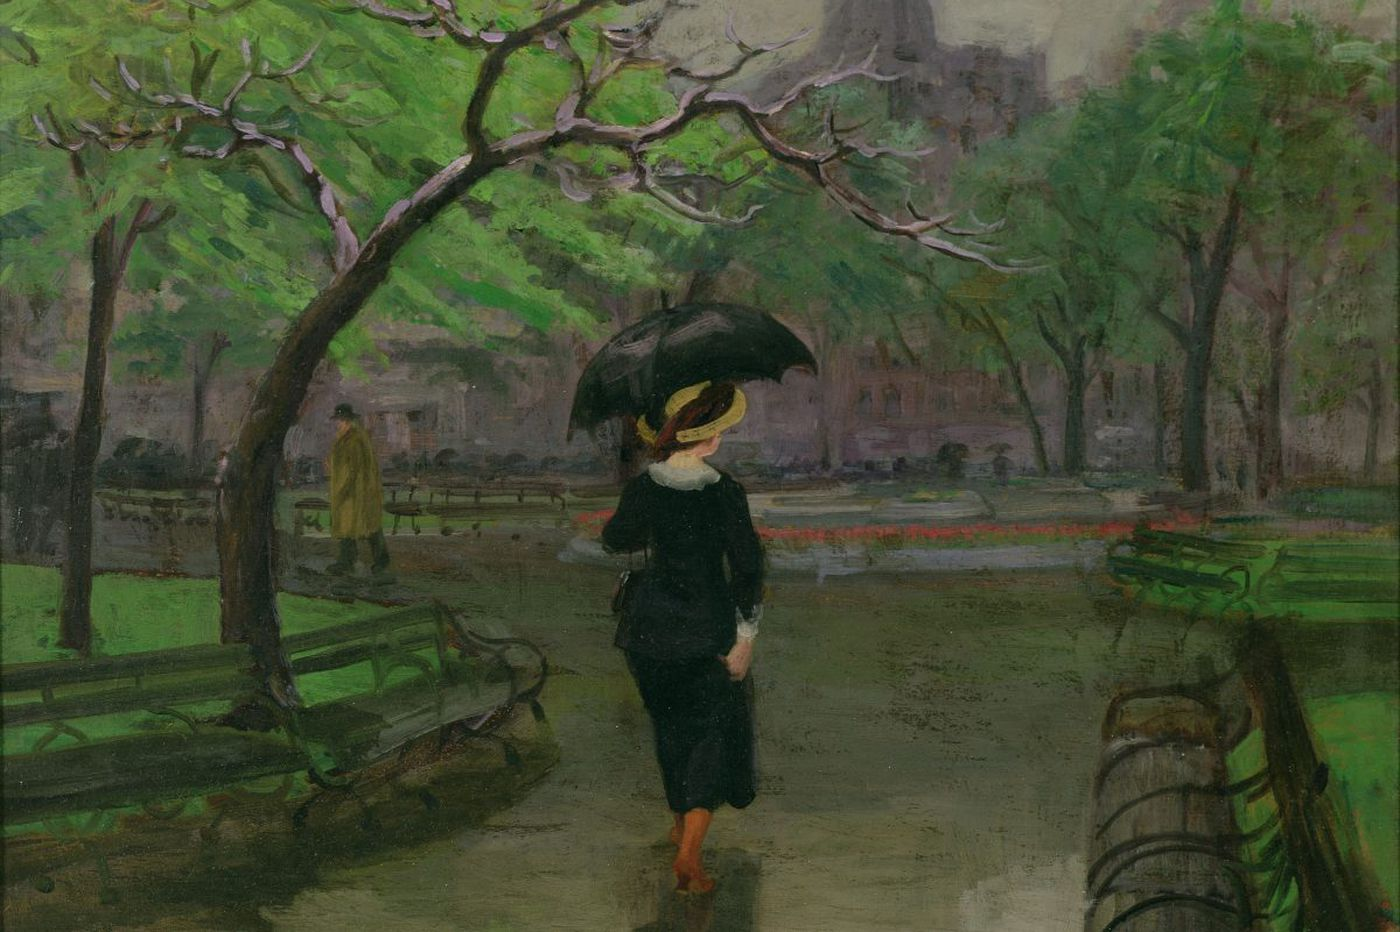 From Inquirer artist to American master: John Sloan highlighted in Delaware show